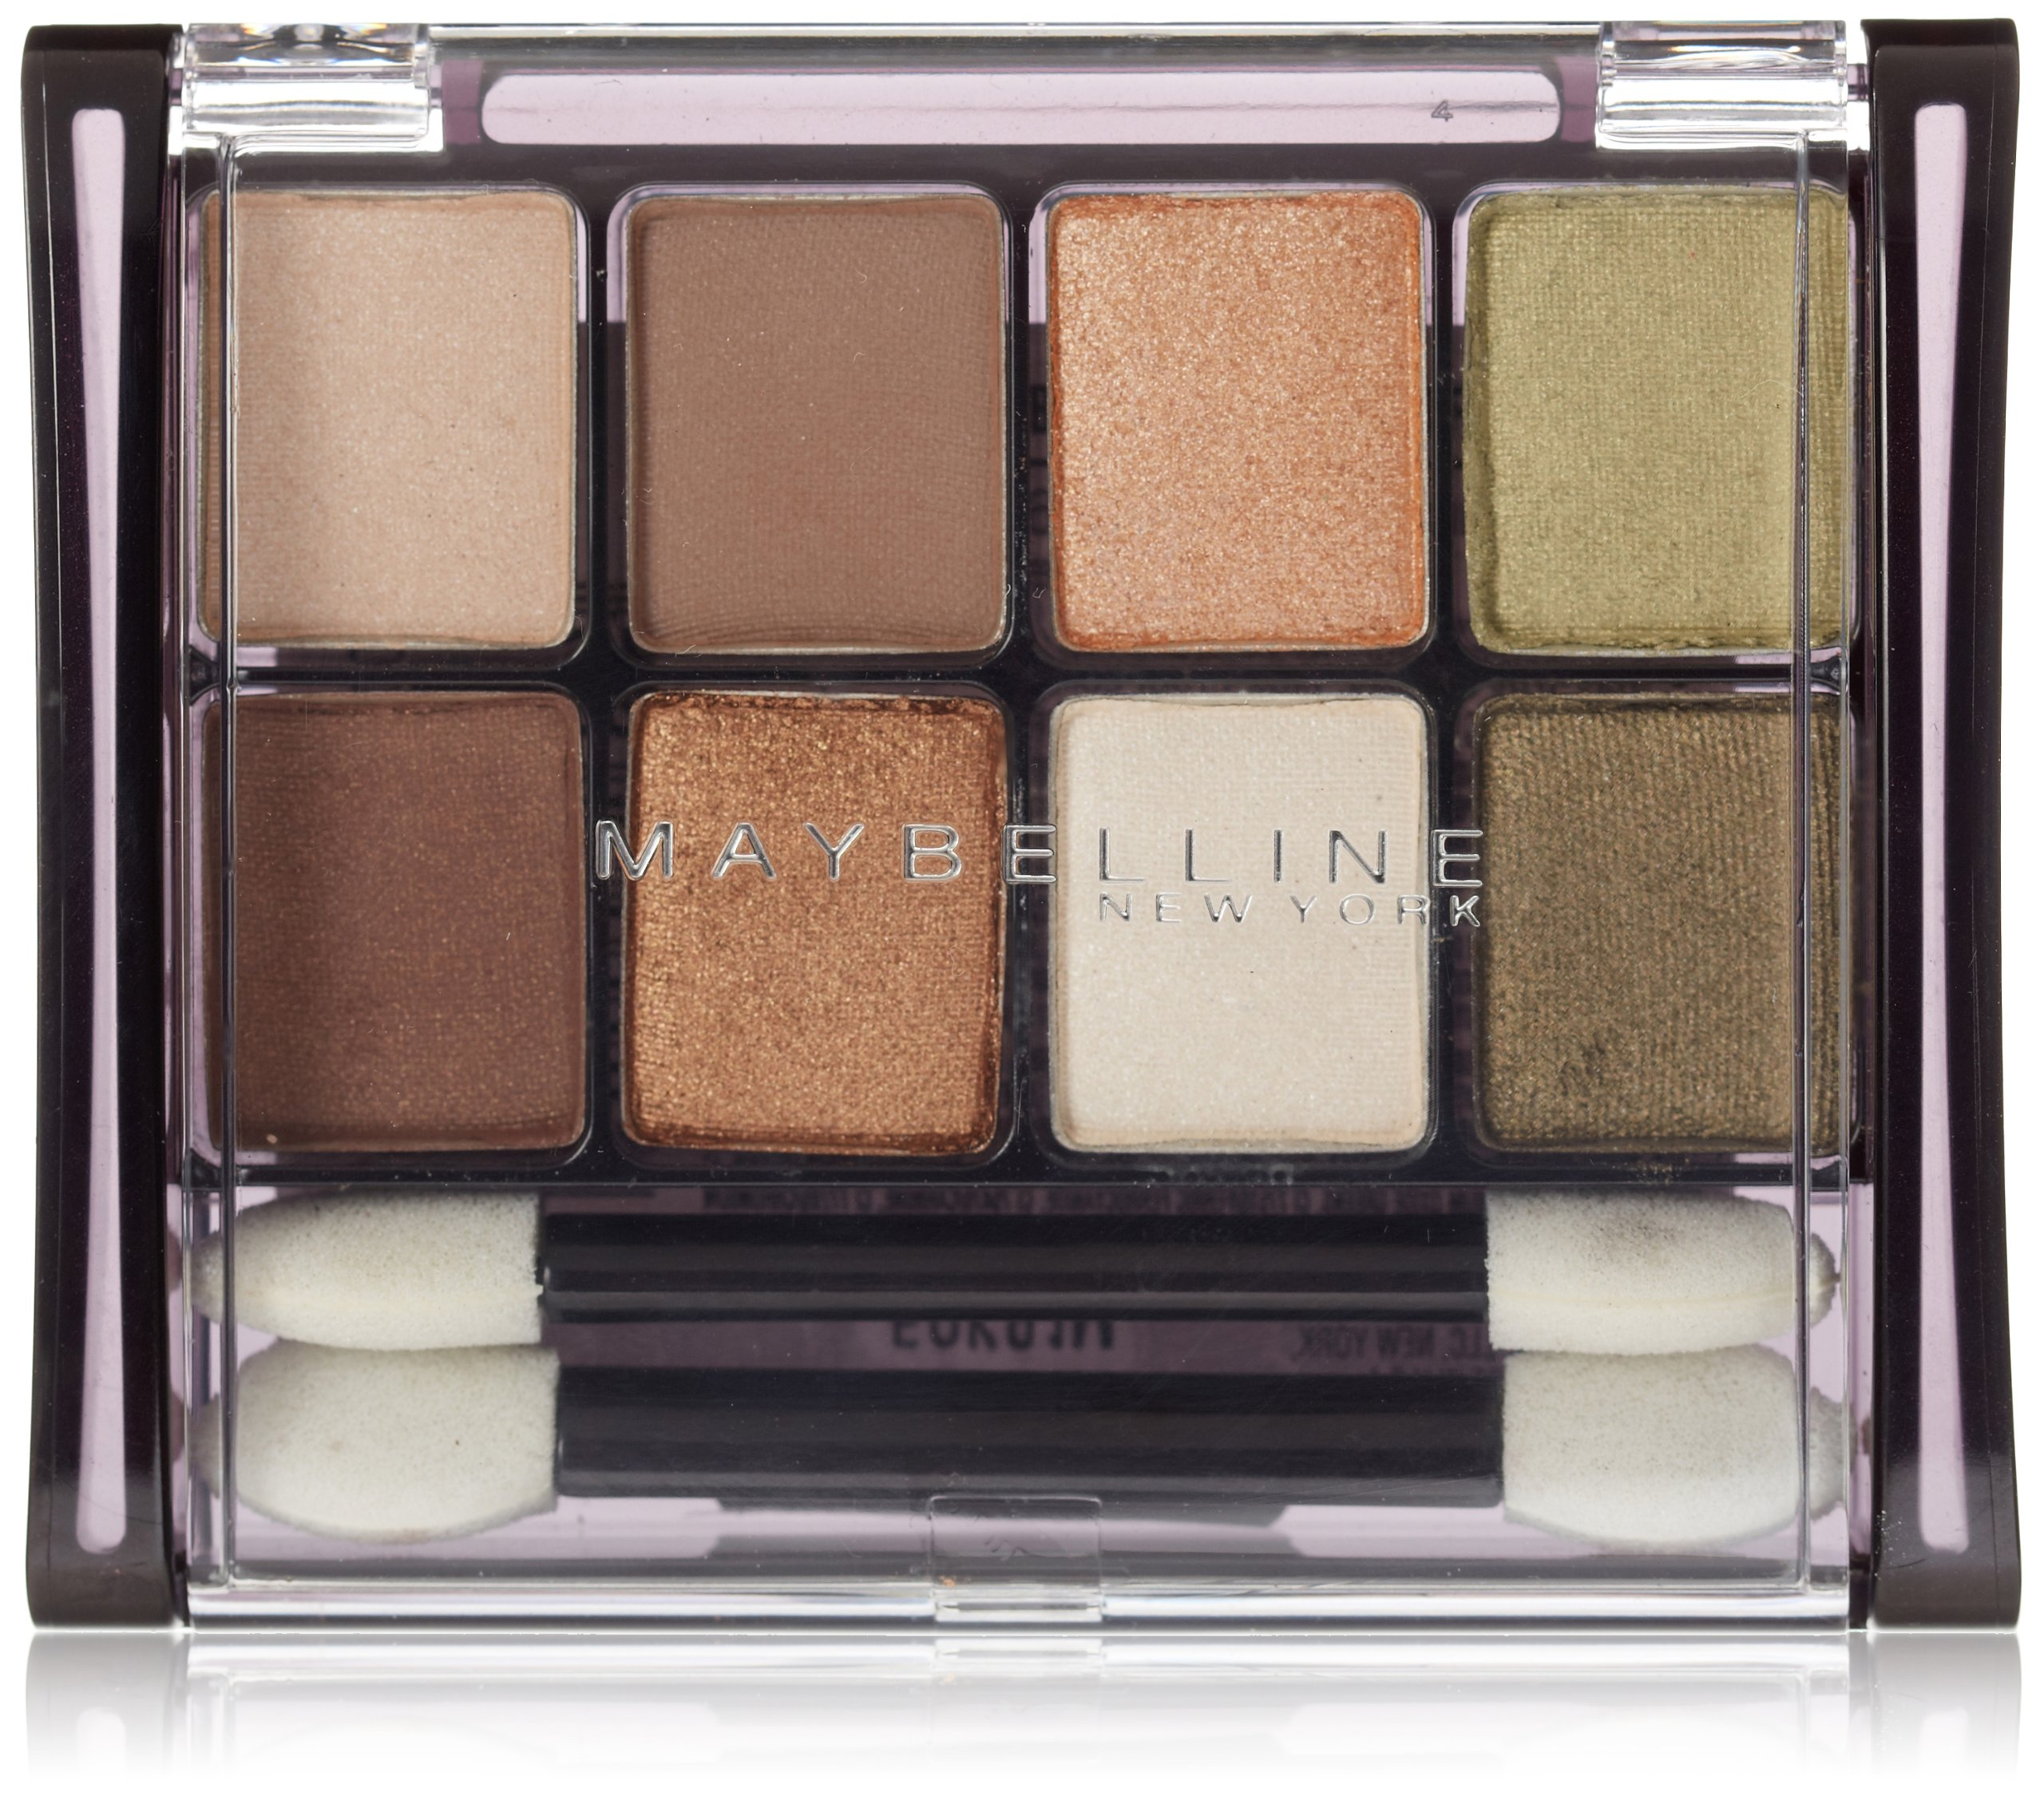 Maybelline New York - Maybelline New York Expert Wear Eyeshadow 8-Pan, Sunbaked Neutrals 10, 0.22 Ounce